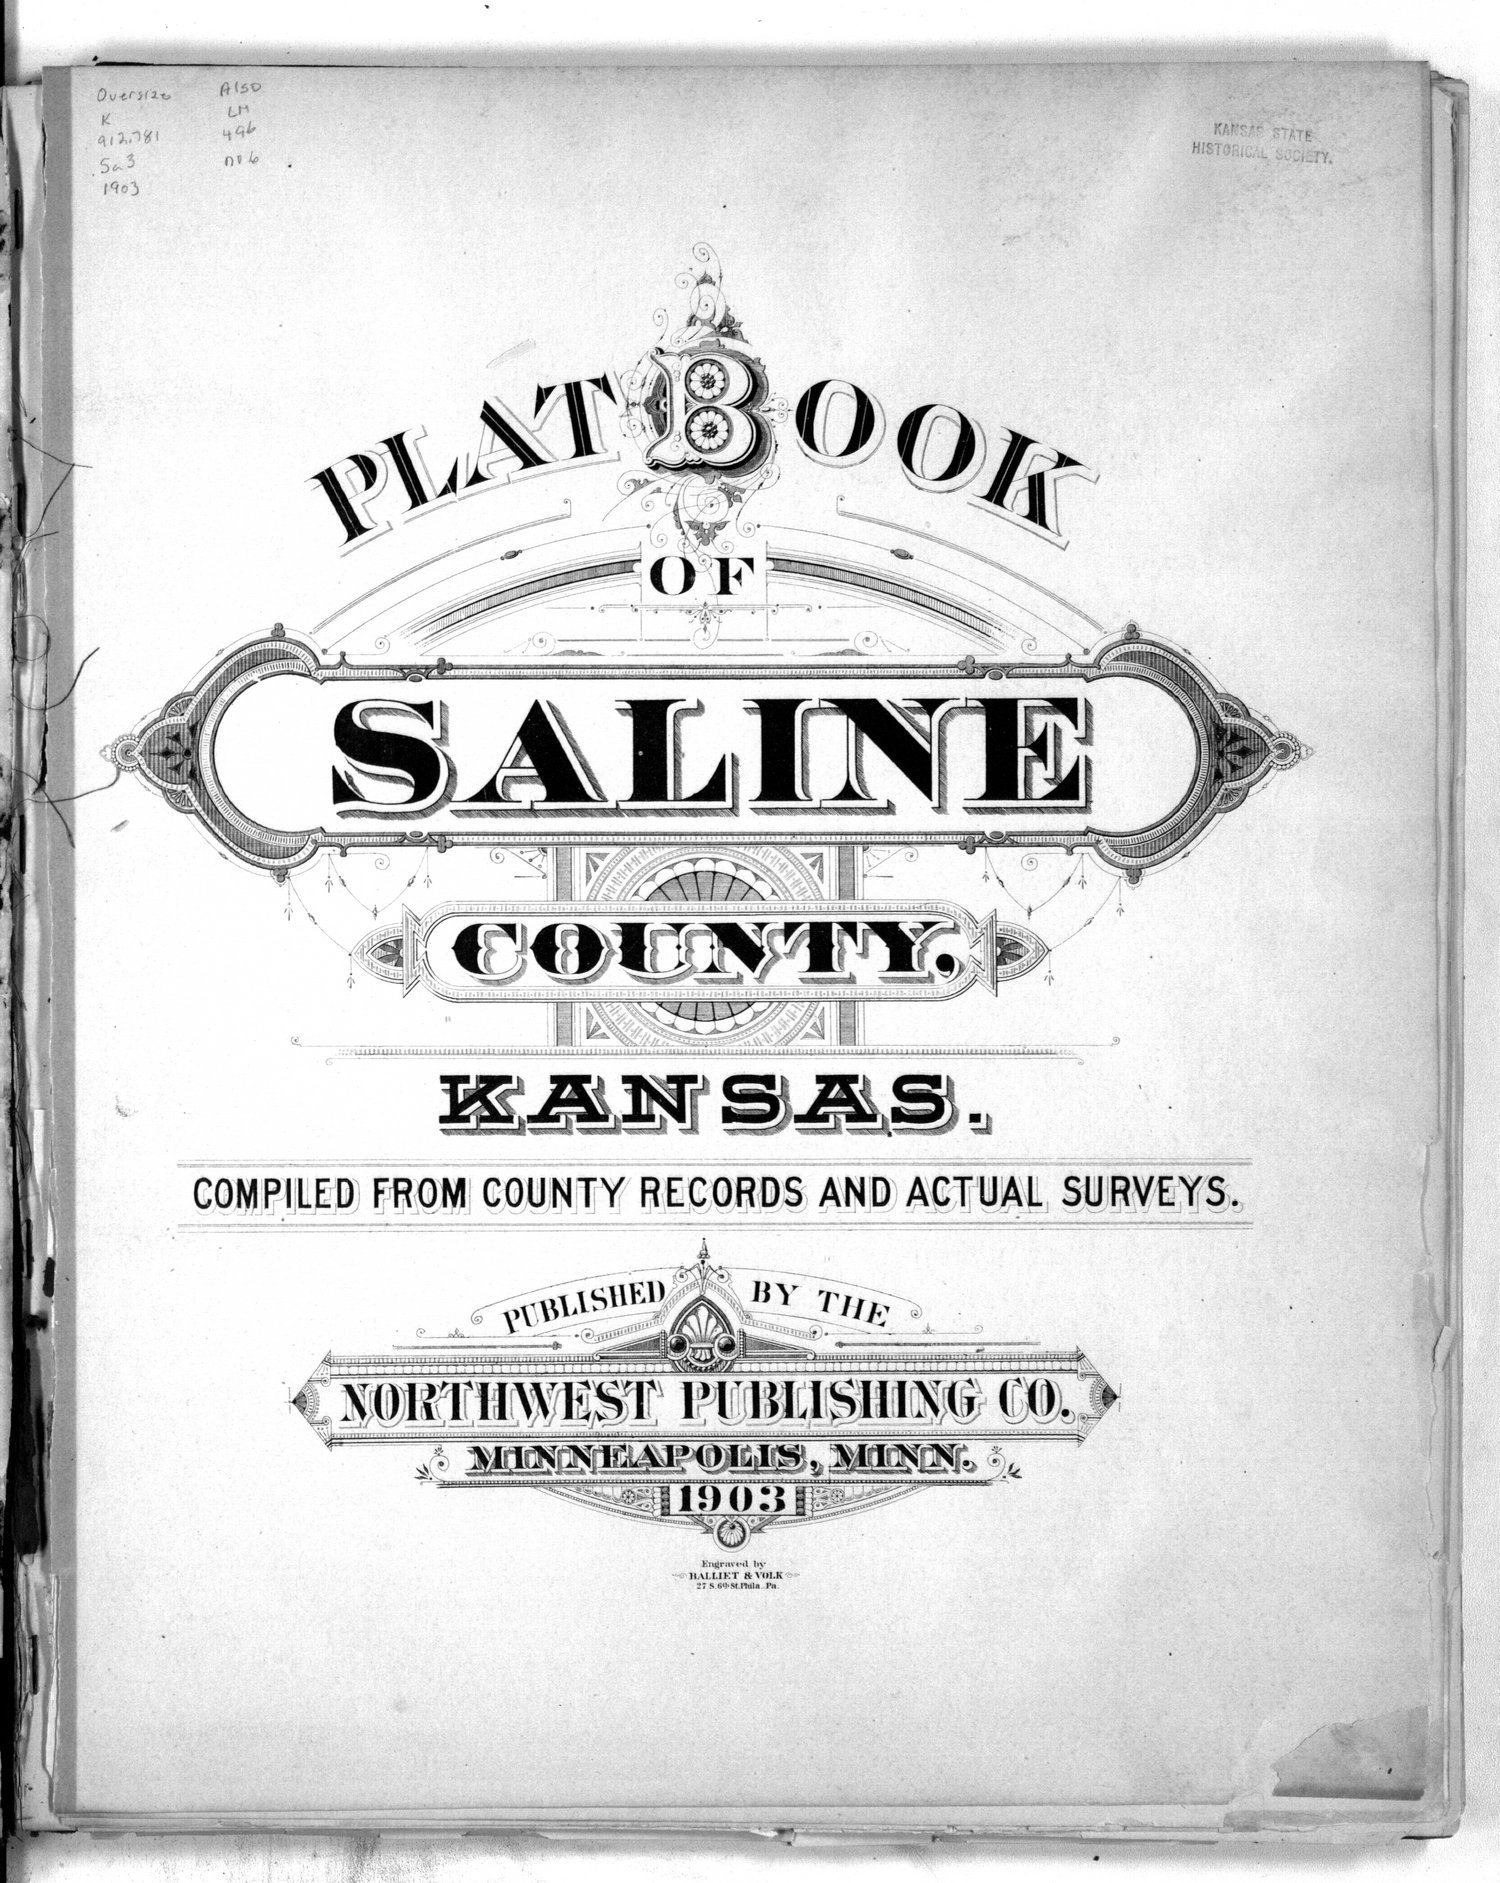 Plat book of Saline County, Kansas - Title page